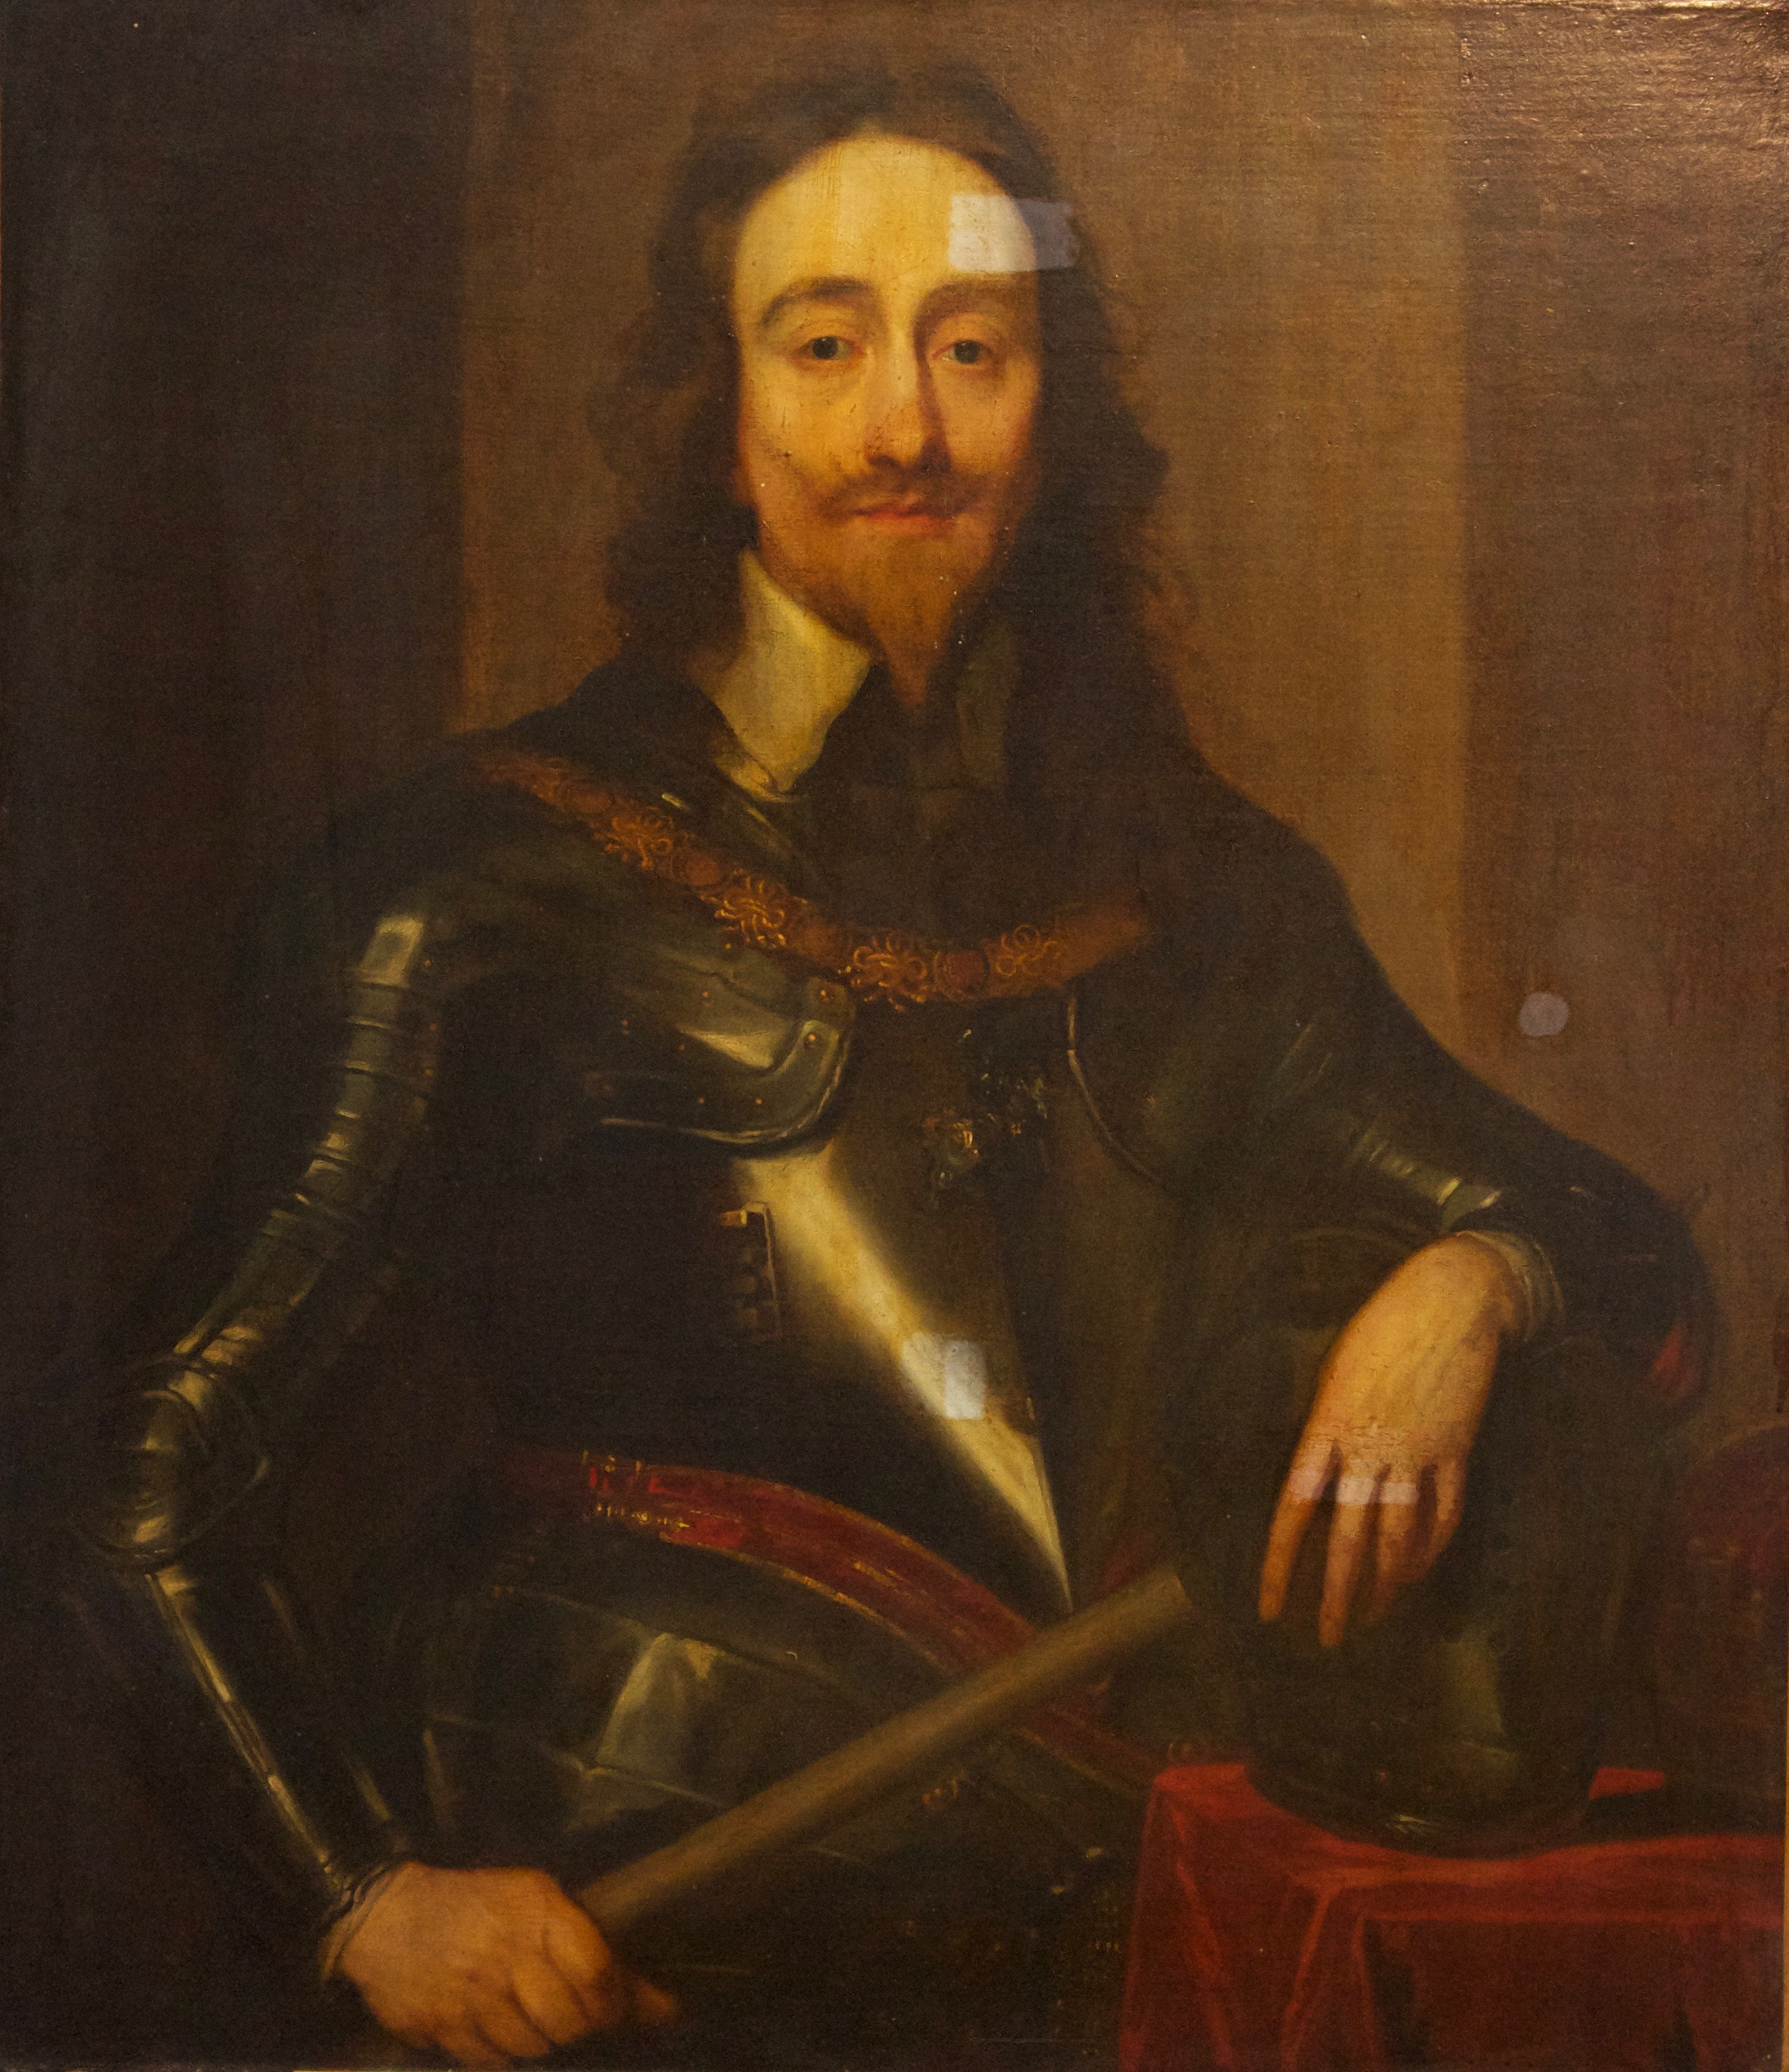 Portrait of King Charles - Before treatment